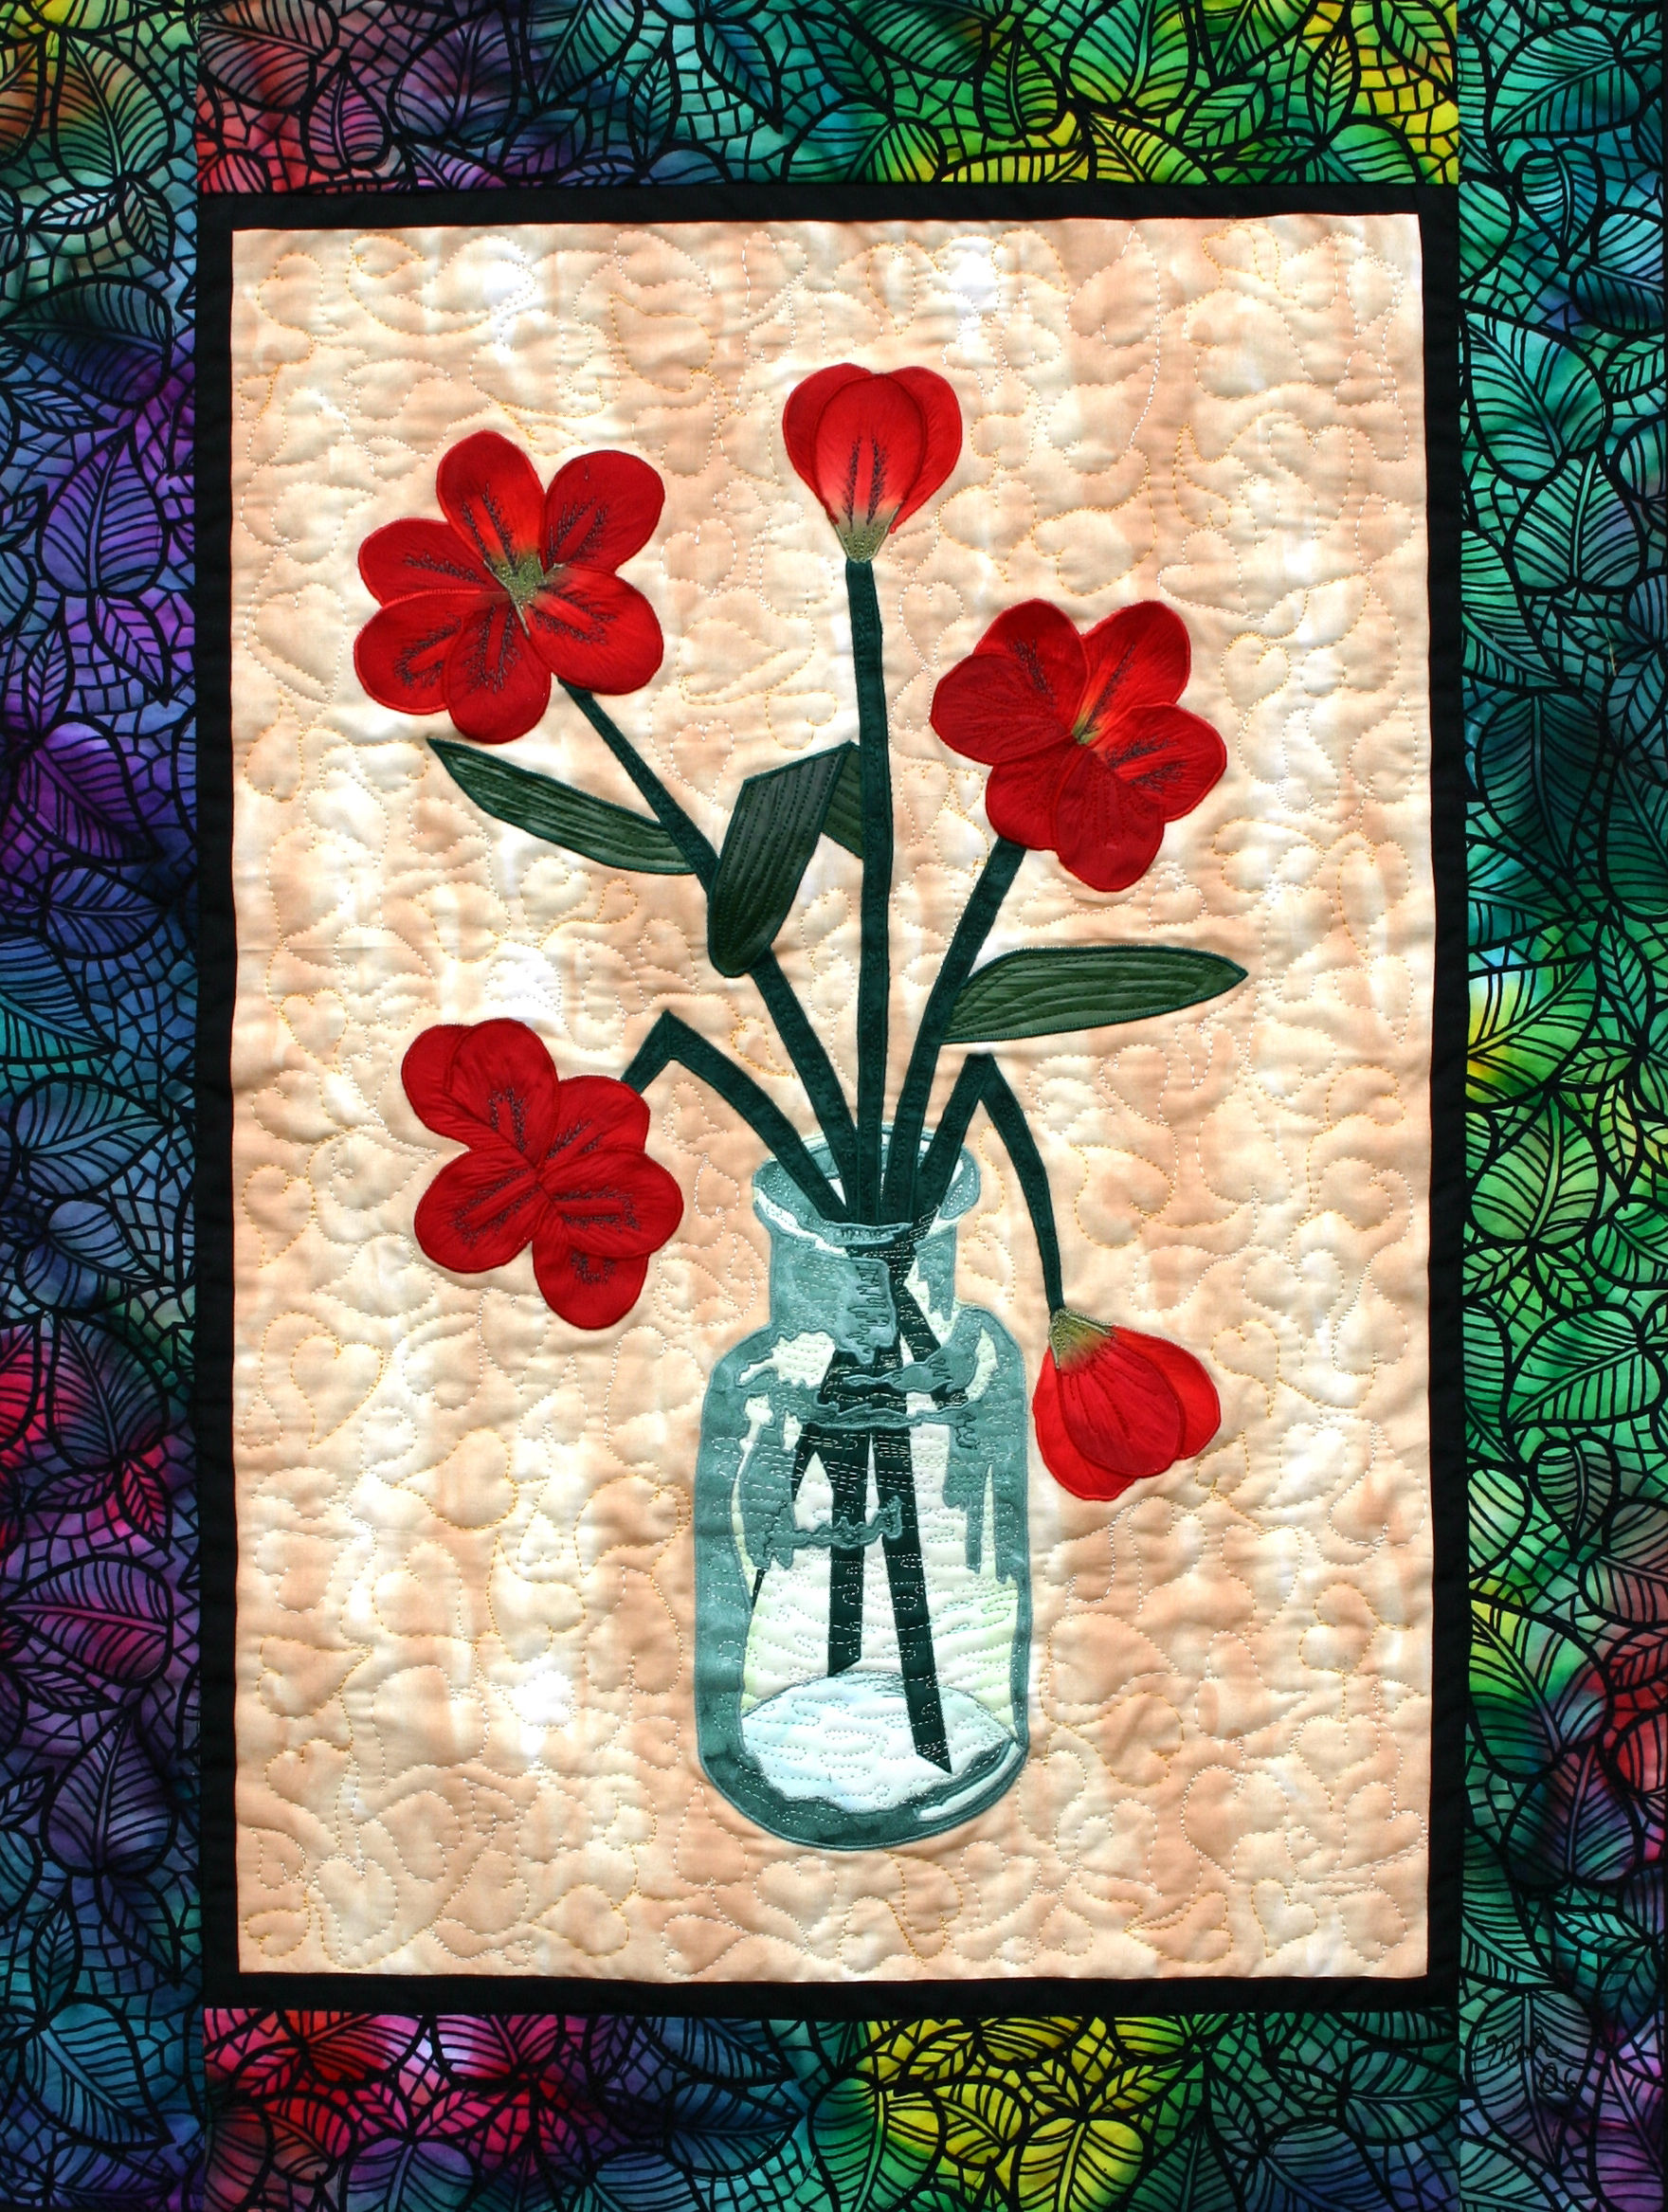 glass vase with flowers is a fiber art work showing some red flowers in a vase with a threadpainted image of glass showing shading and shape with the use of creative stitching